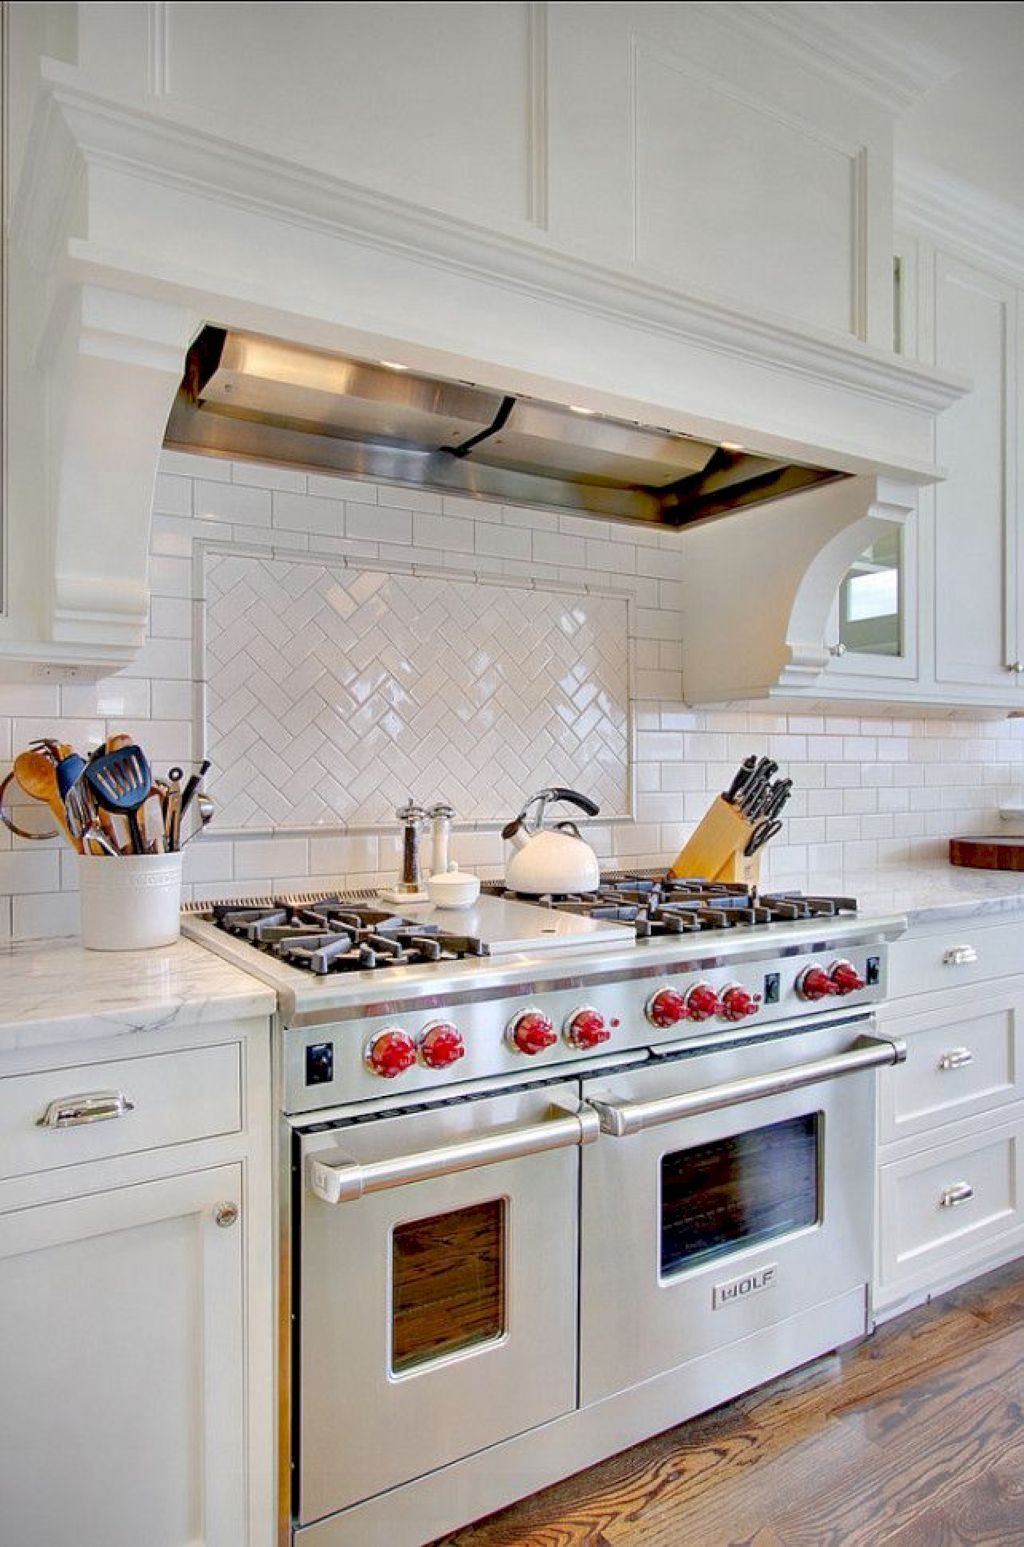 50 White Kitchen Backsplash Design And Decor Ideas   BellezaRoom.com